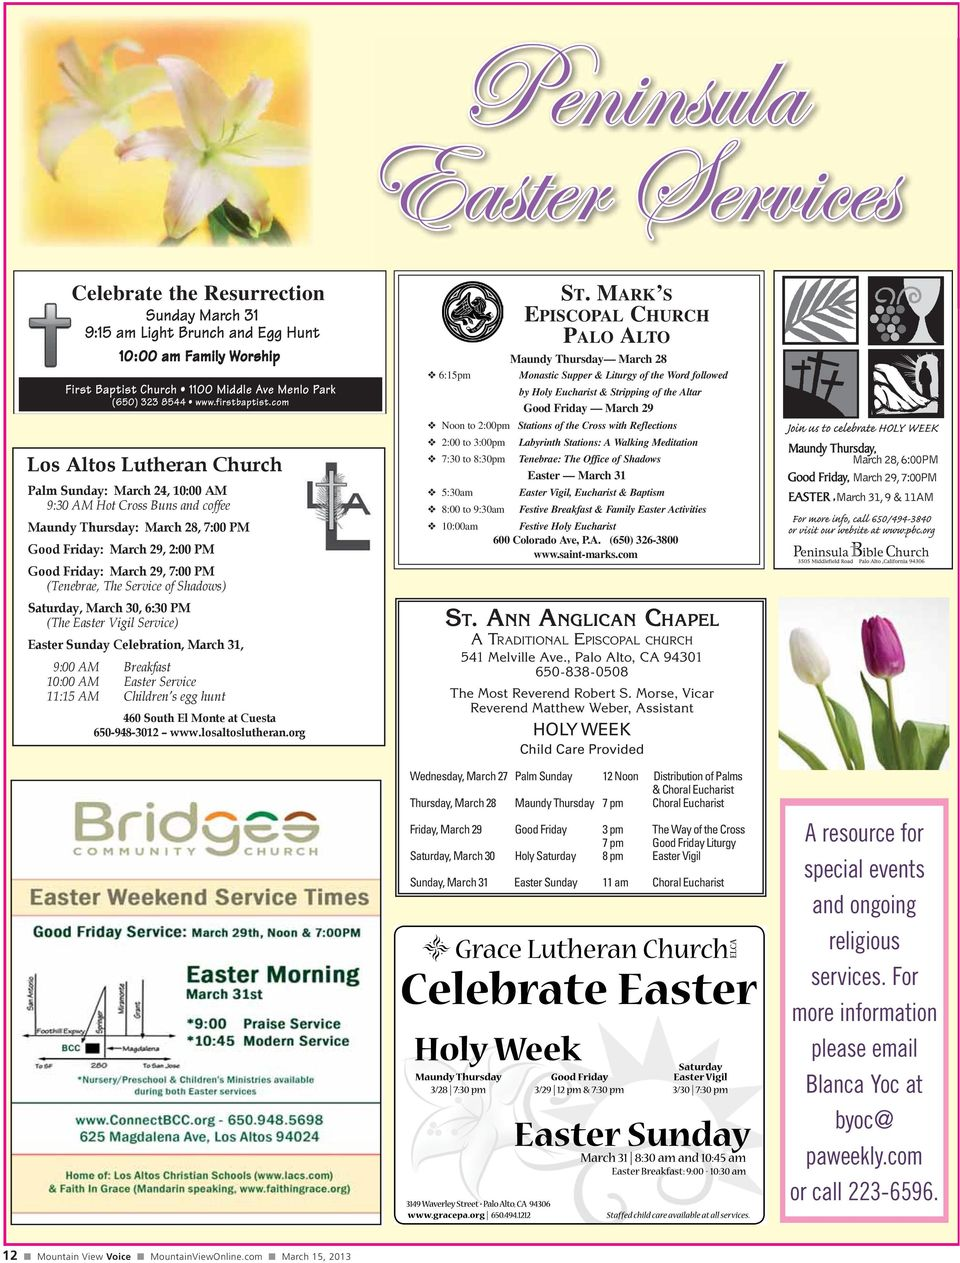 Service) Easter Sunday Celebration, March 31, 9:00 AM Breakfast 10:00 AM Easter Service 11:15 AM Children s egg hunt 460 South El Monte at Cuesta 650-948-3012 www.losaltoslutheran.org ST.